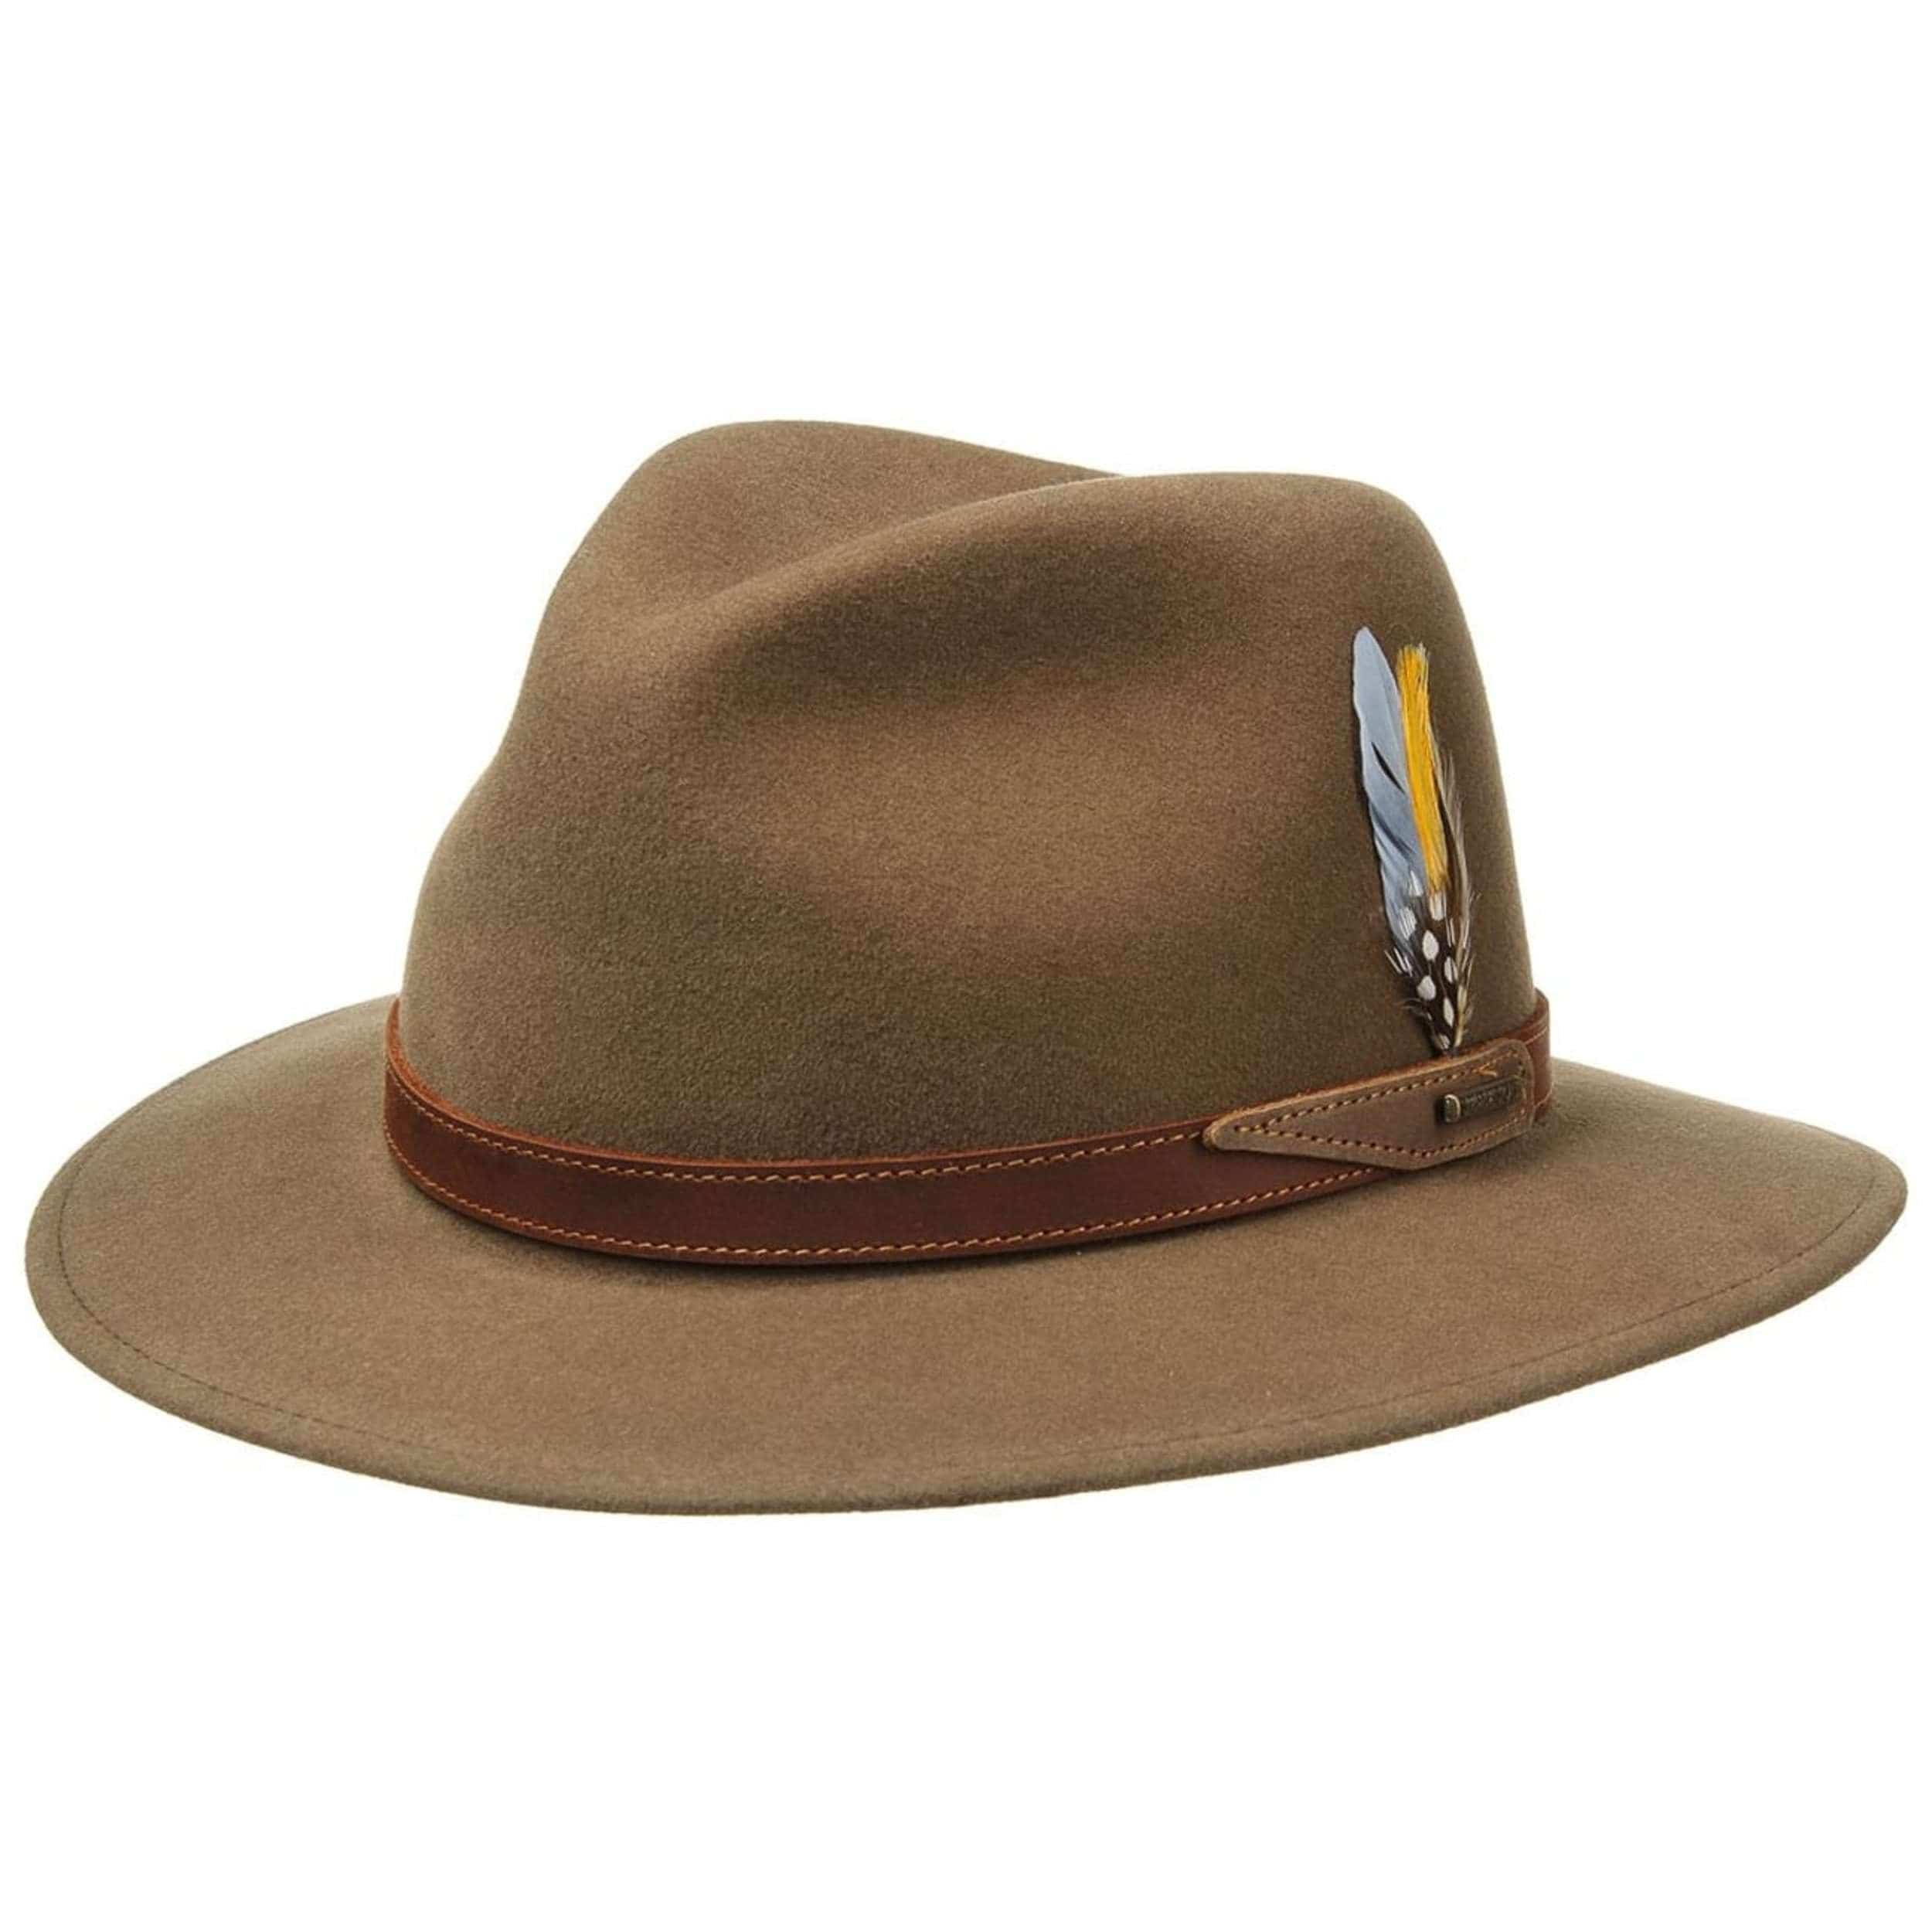 Hat shop online uk